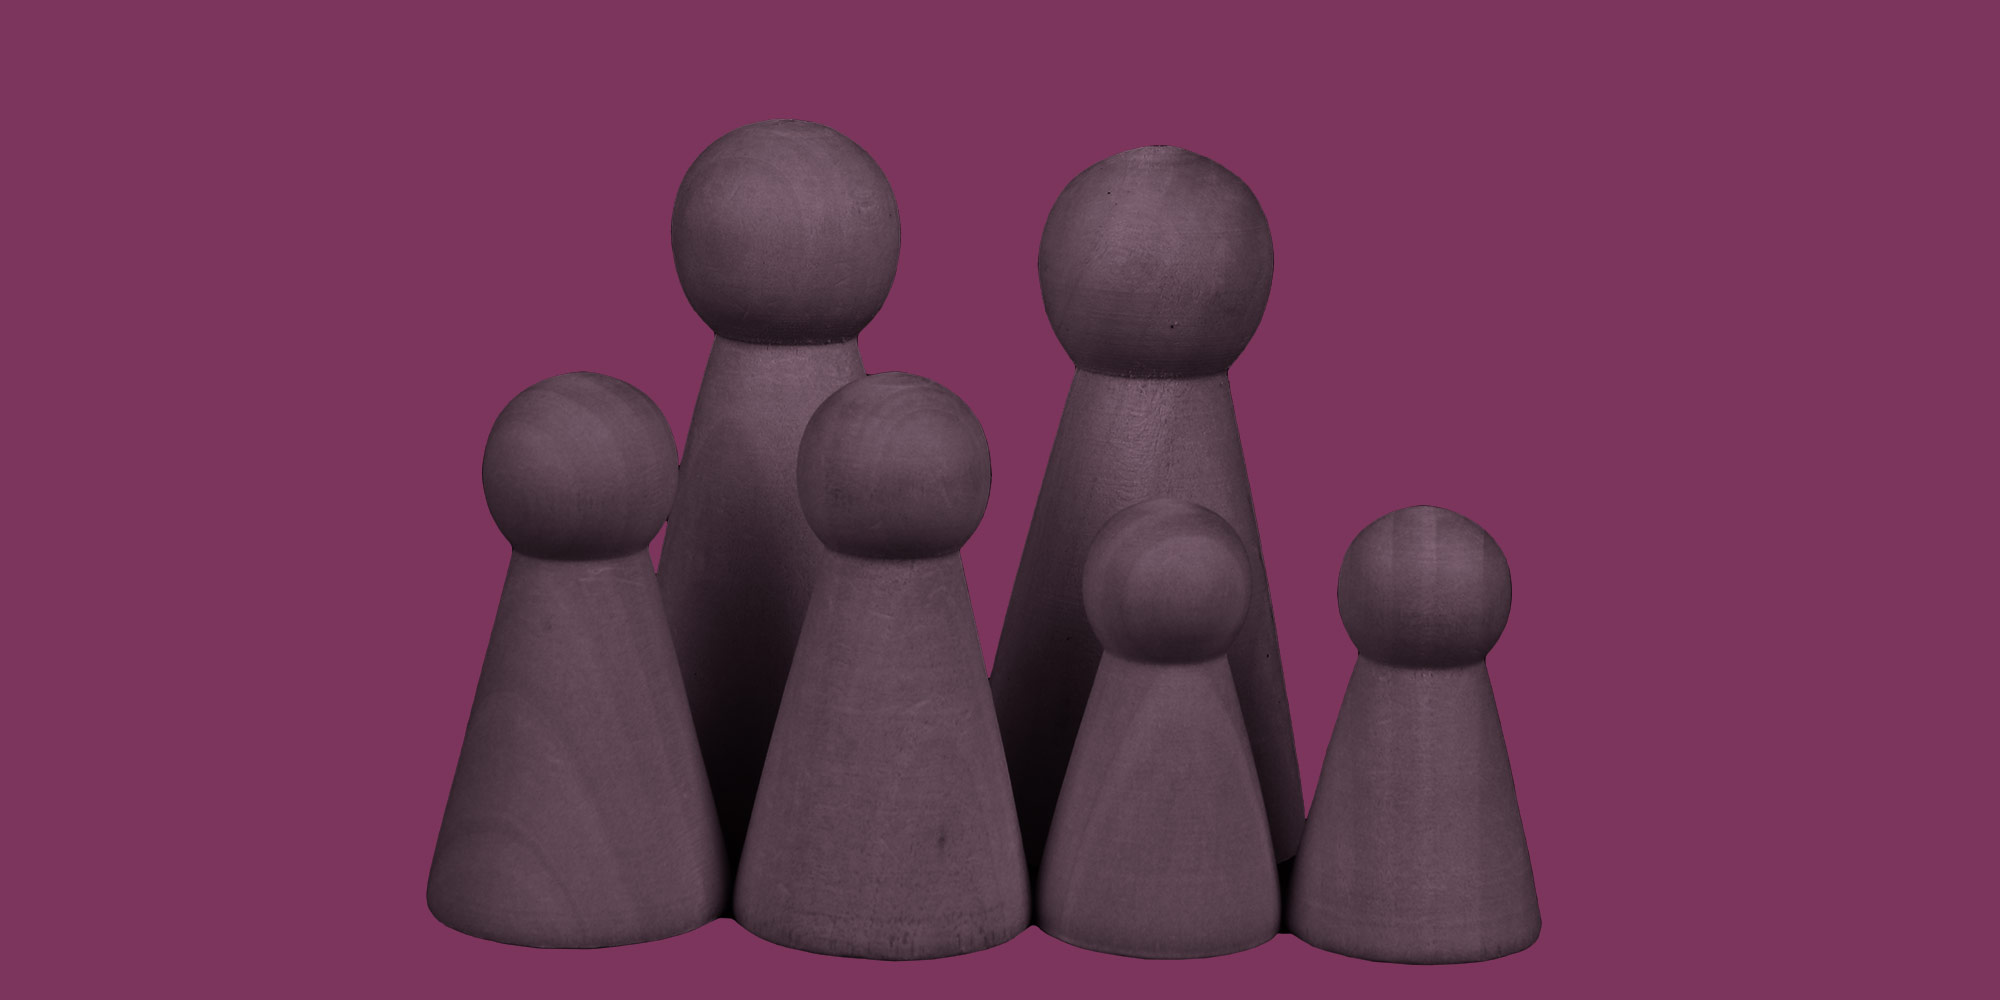 Family of wooden peg people